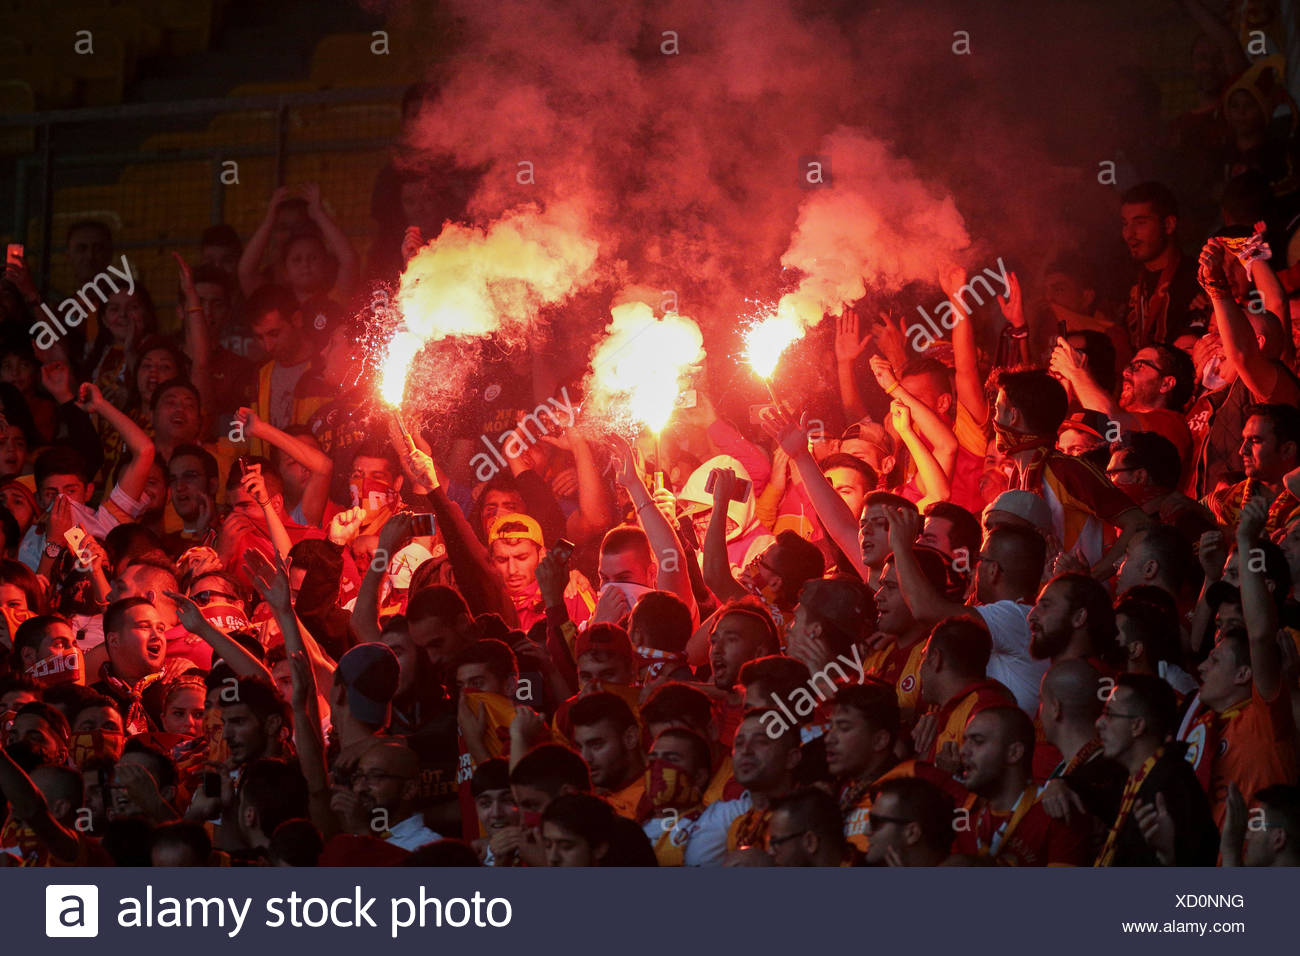 Fans of Galatasaray Istanbul cheer on their team during a friendly game against SK Rapid Vienna, Ernst-Happel-Stadium, Vienna - Stock Image